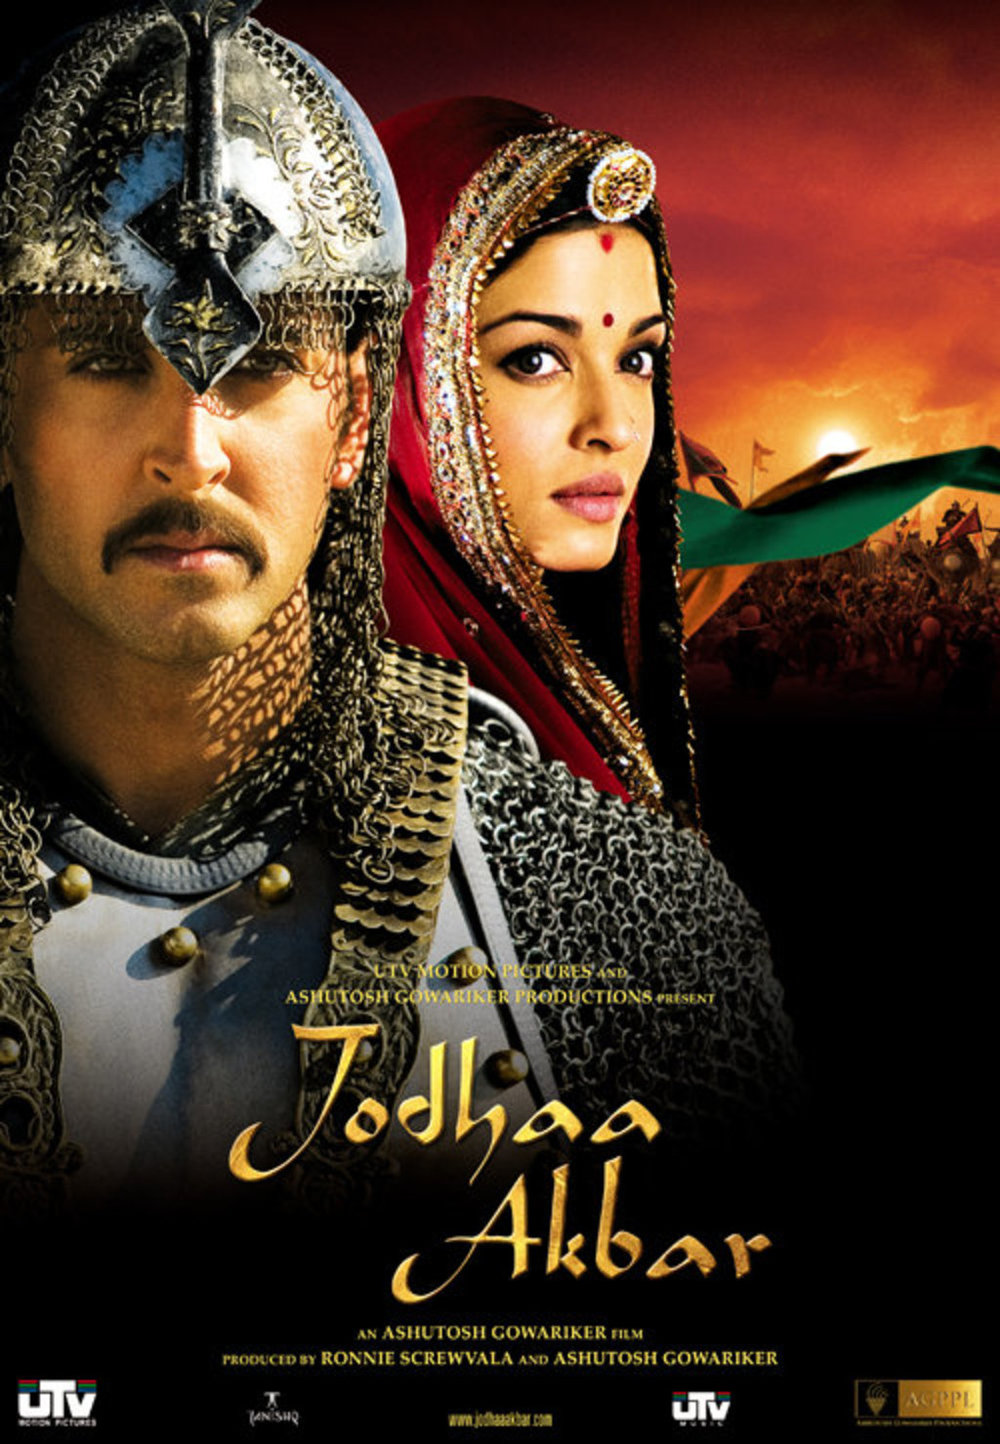 Photo Courtesy of netflixmovies.com ||  'Jodhaa Akbar' is a sixteenth-century love story that was brought to film nearly a decade ago. Its message rings clearer today, Marissa Hank '20 writes.